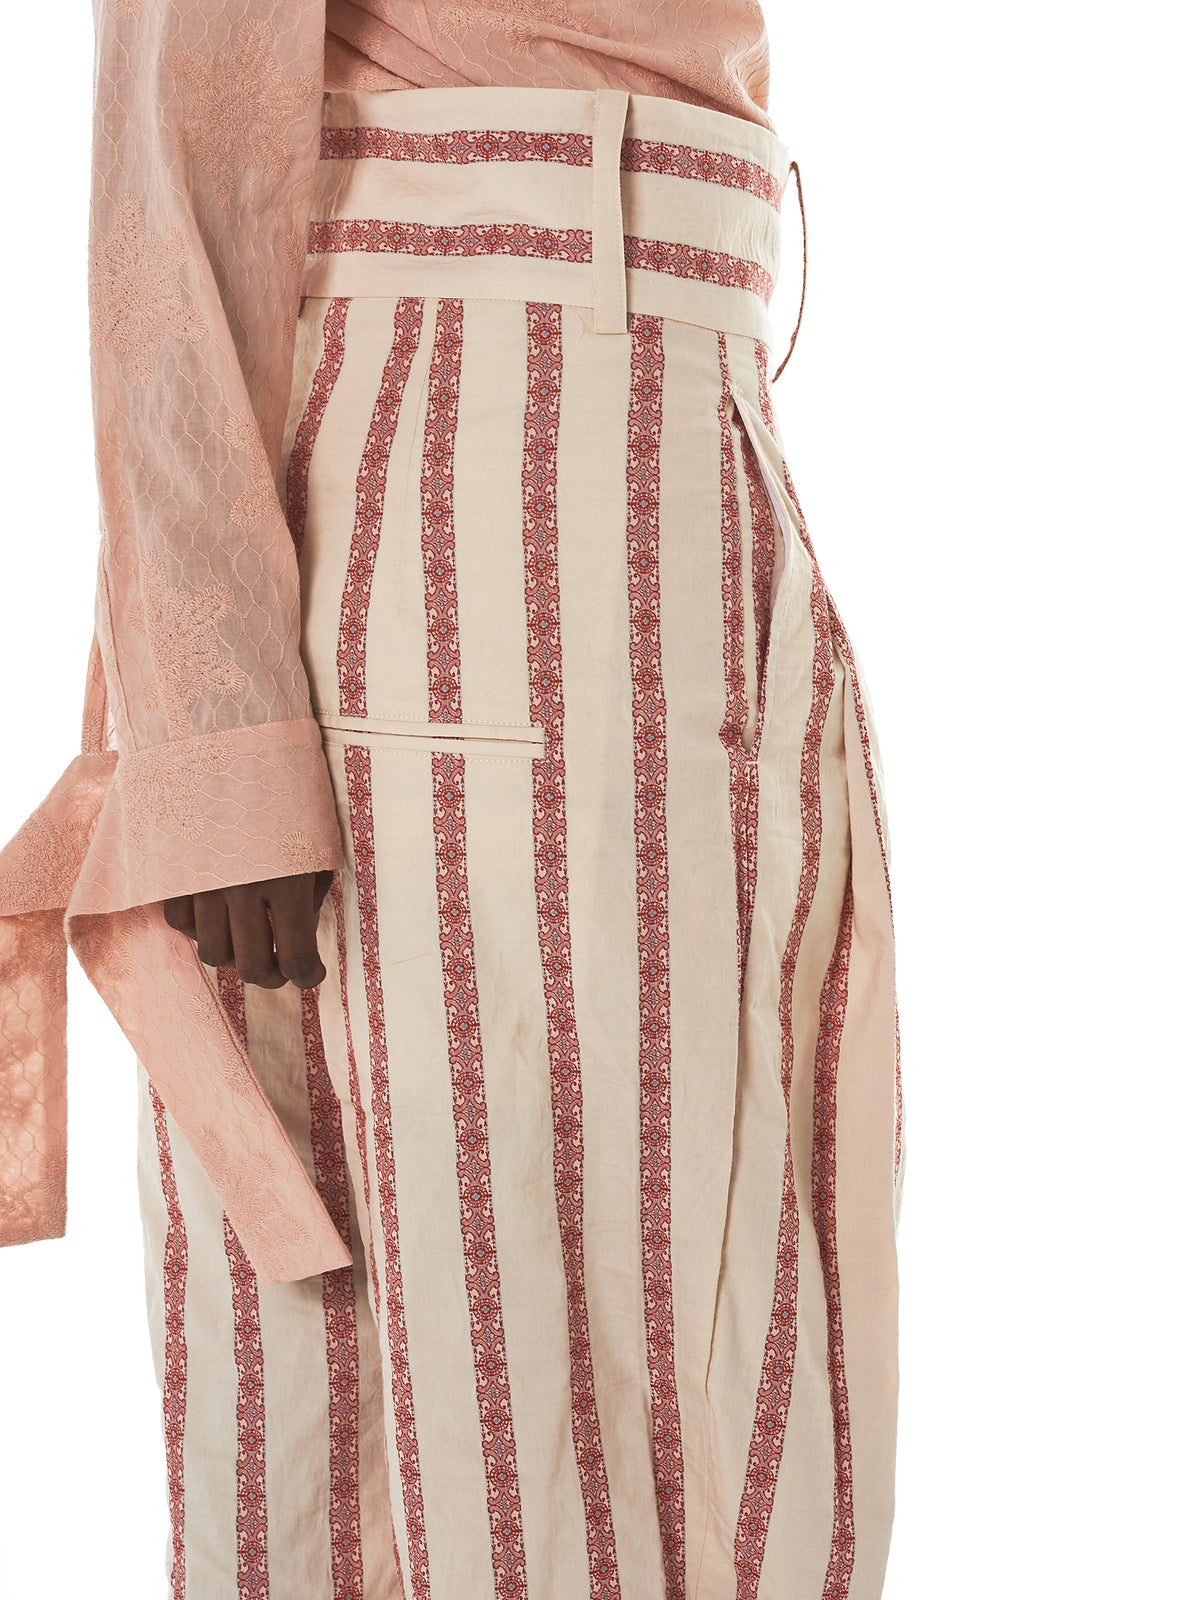 Daniel Gregory Natale Striped Trousers - Hlorenzo Detail 2